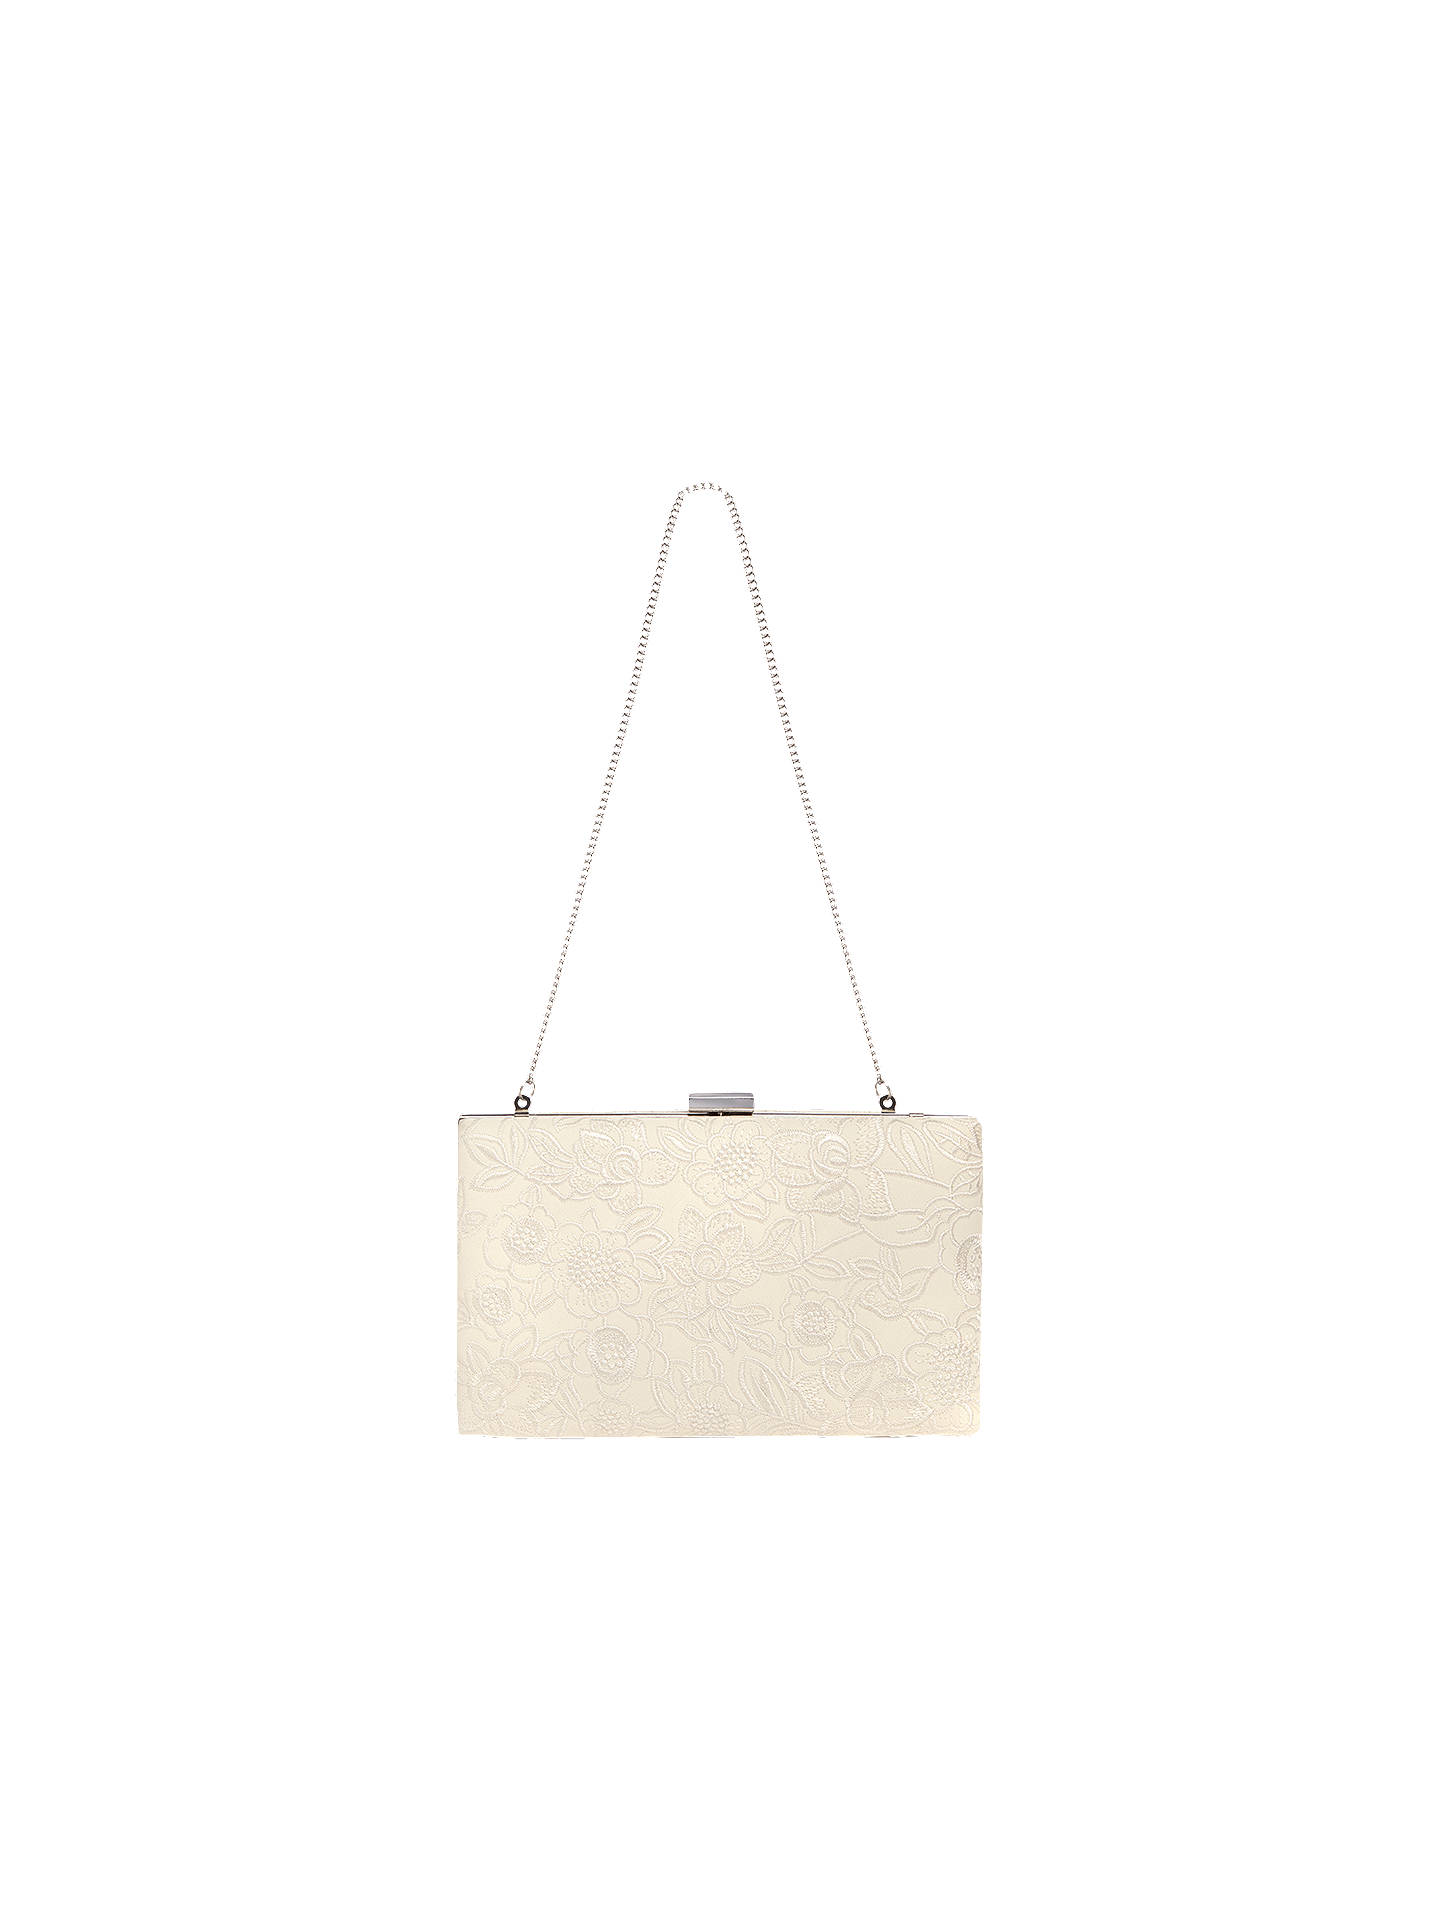 Phase Eight Ceri Embroidered Clutch Bag at John Lewis & Partners